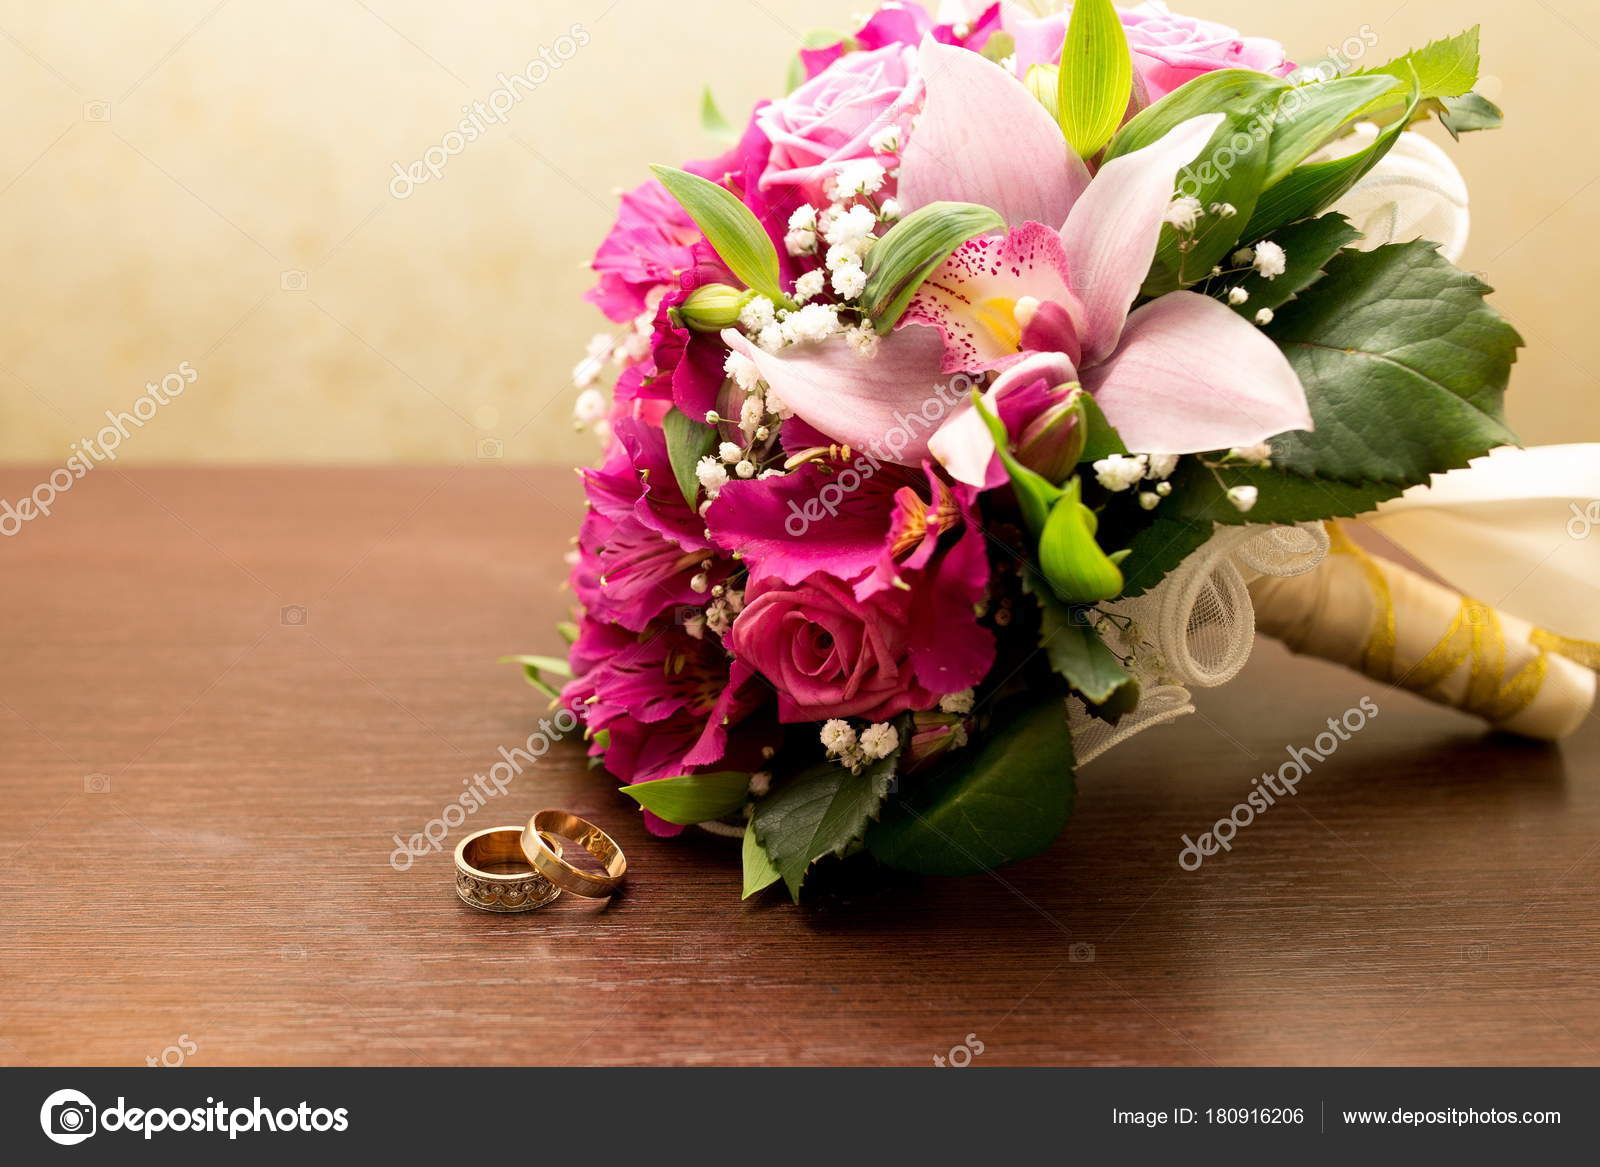 Big flower bouquet stock photo olgaosa 180916206 big bouquet and two wedding rings goods for wedding this photo is perfect for magazines shops dealing with wedding dresses ceremonies bride groom izmirmasajfo